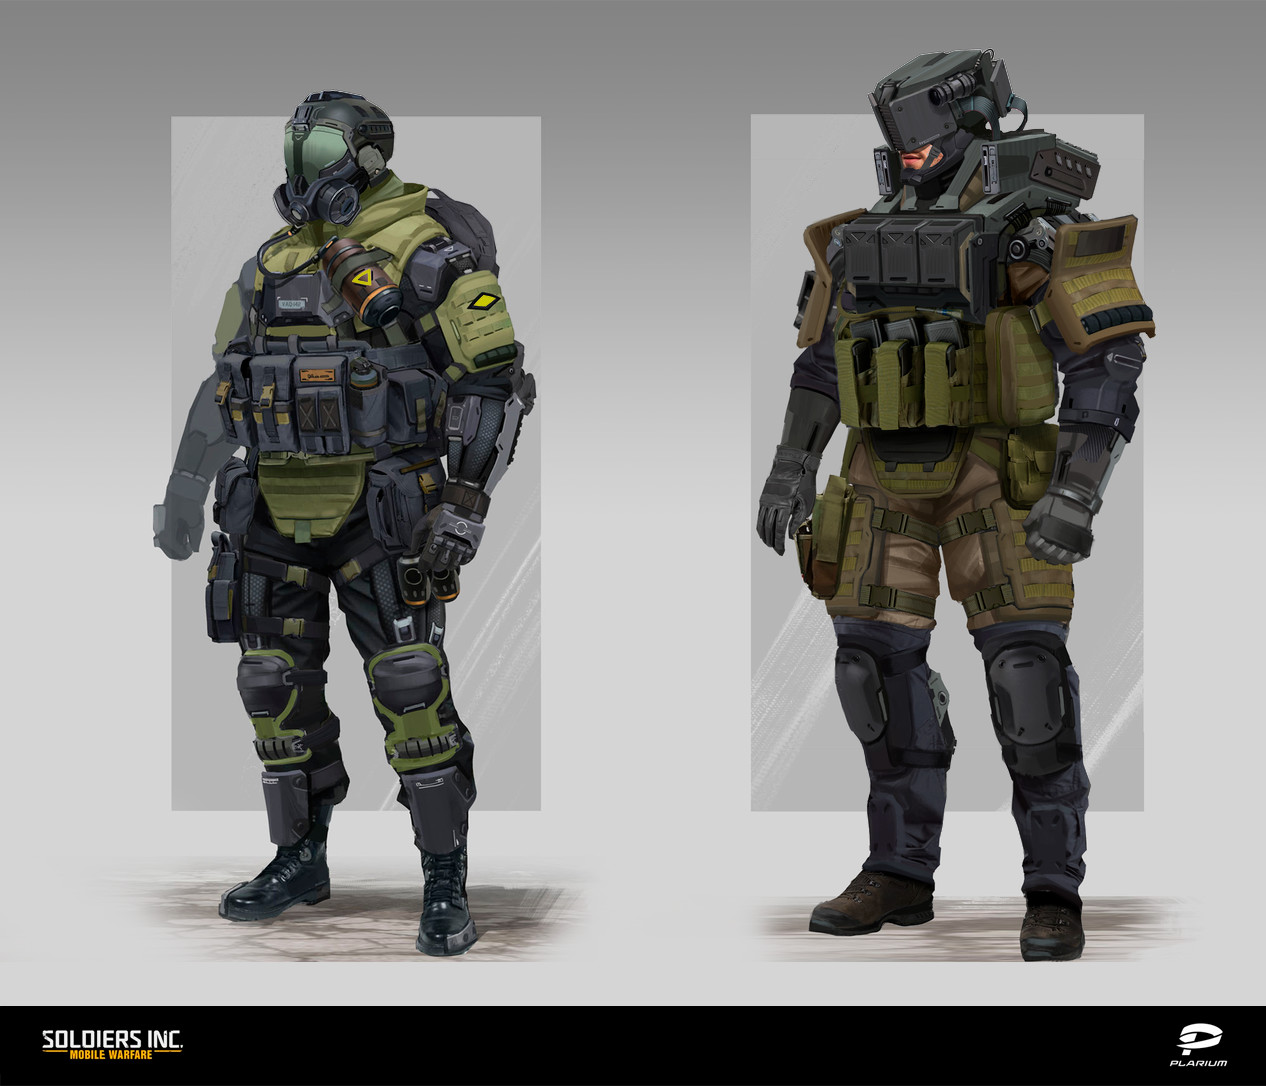 Soldiers Inc. Characters Concept art 2